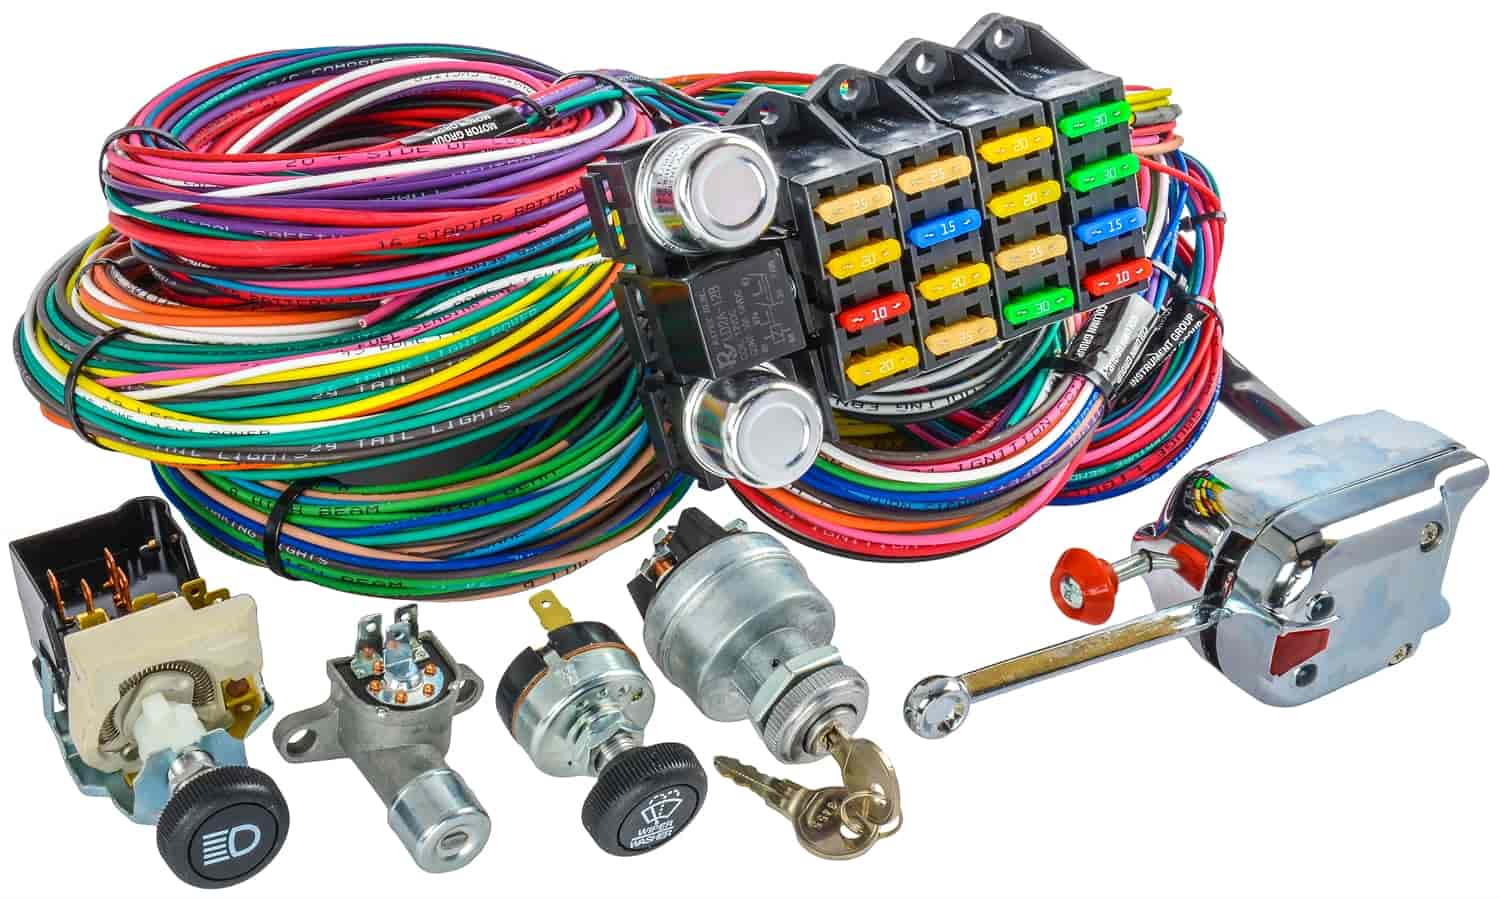 555 10405k jegs performance products 10405k universal wiring harness universal wiring harness kits at creativeand.co